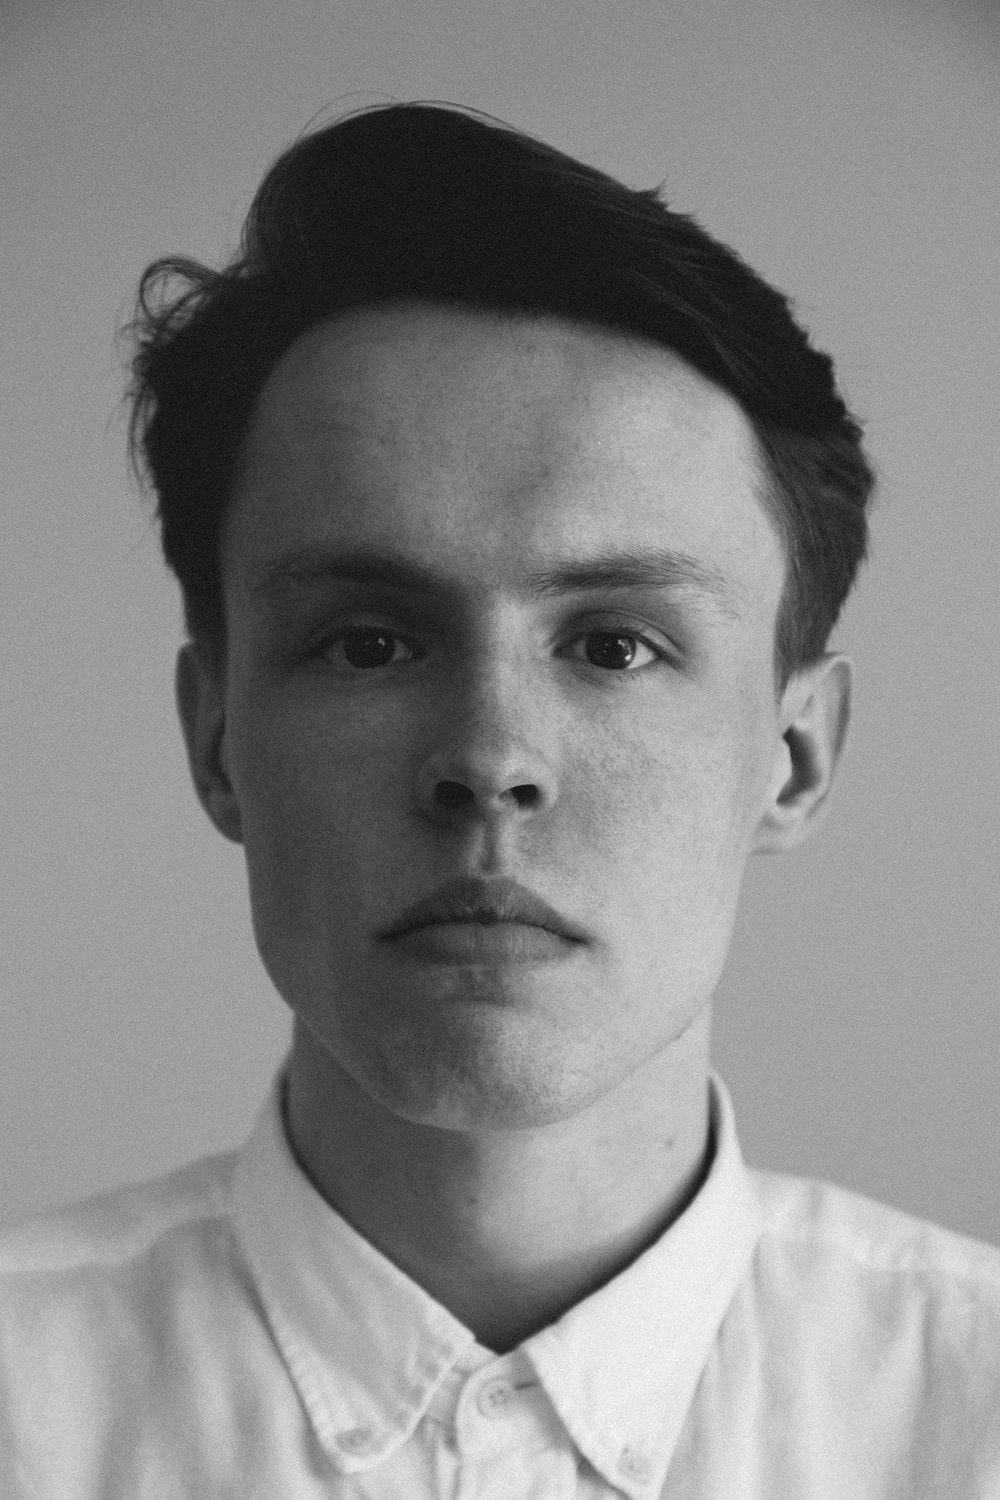 grayscale photography of man wearing collar top